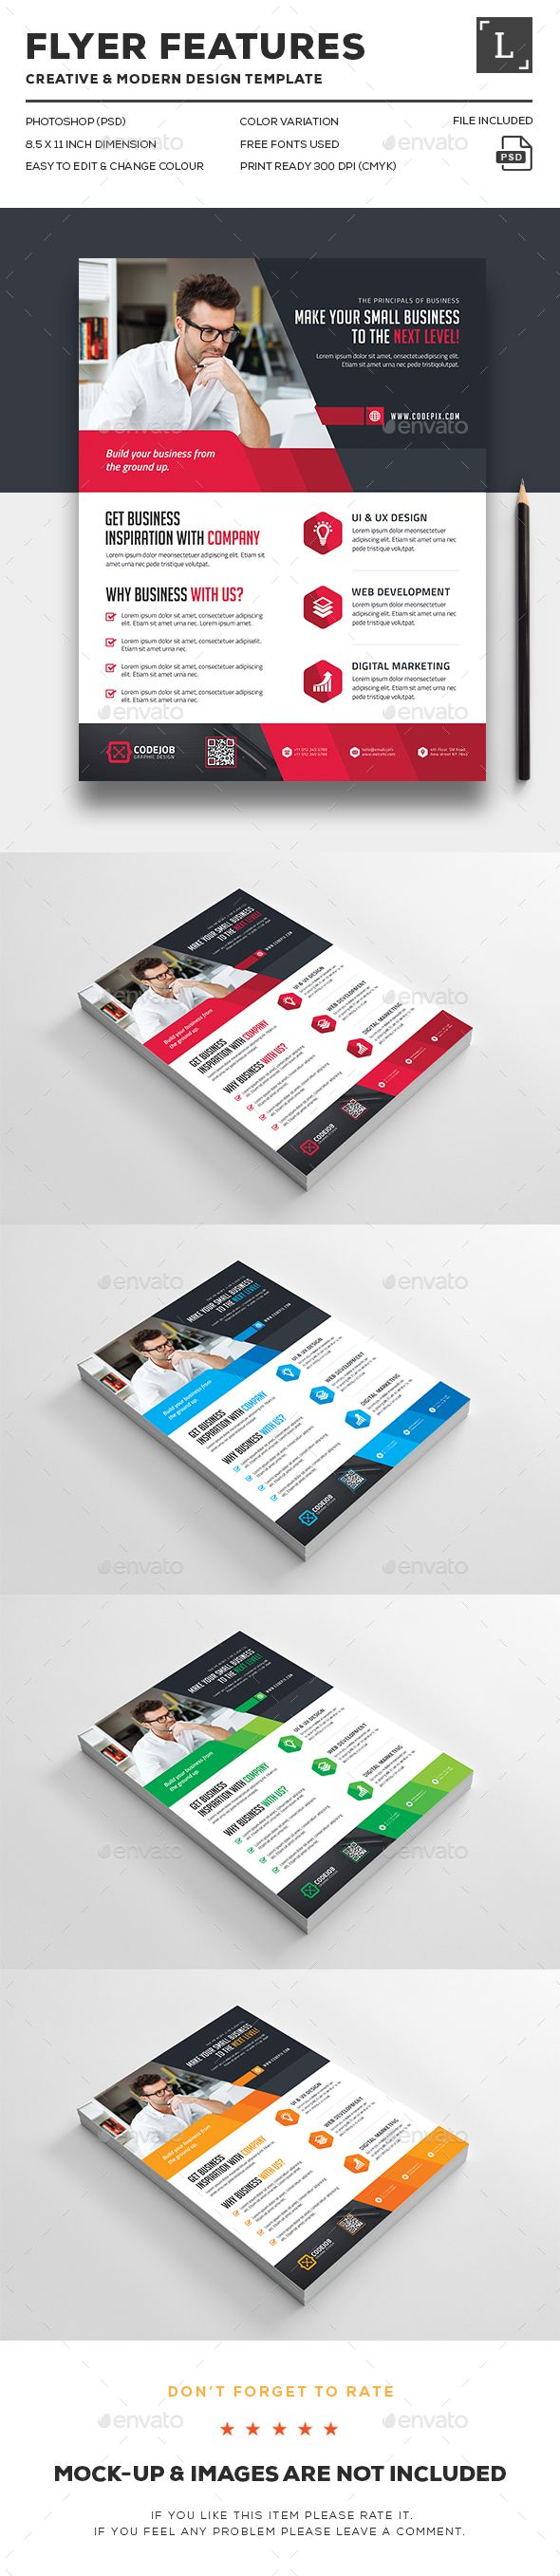 147 best flyer design images on pinterest flyer design corporate flyers reheart Gallery